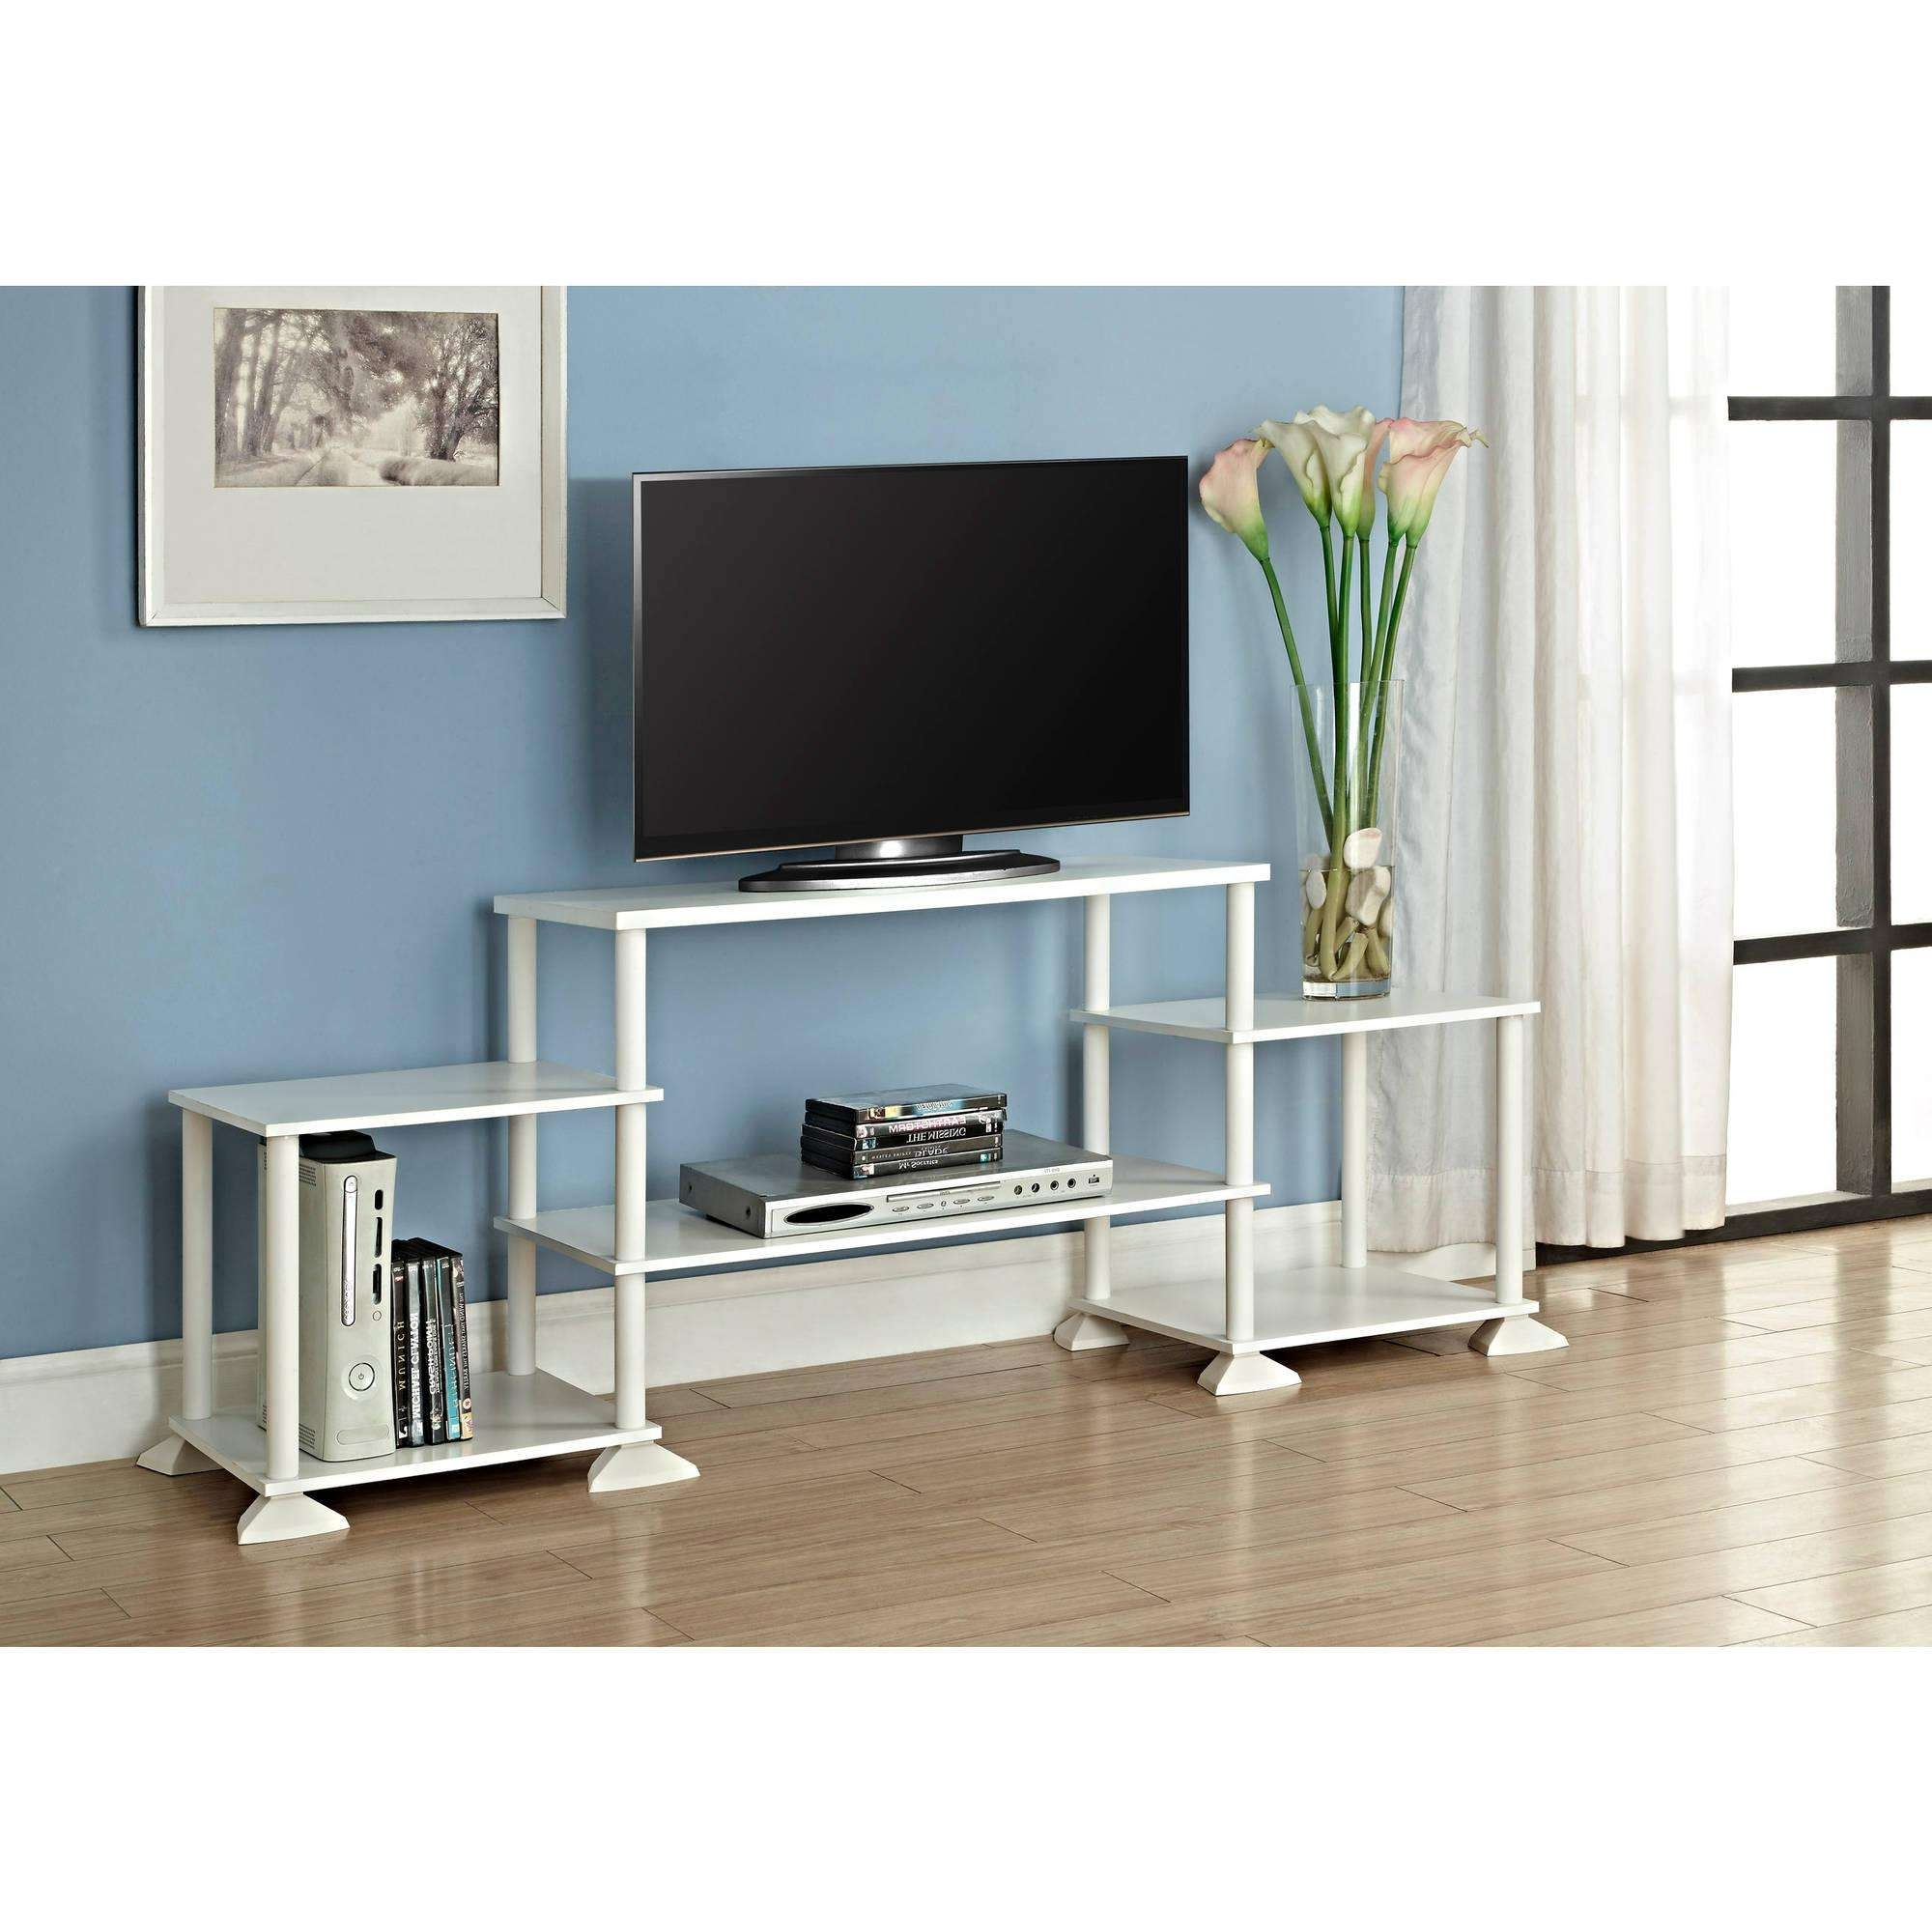 Tv Stands Elegant White Distressed Stand Interesting Inch Flat Throughout White Tv Stands For Flat Screens (View 12 of 15)